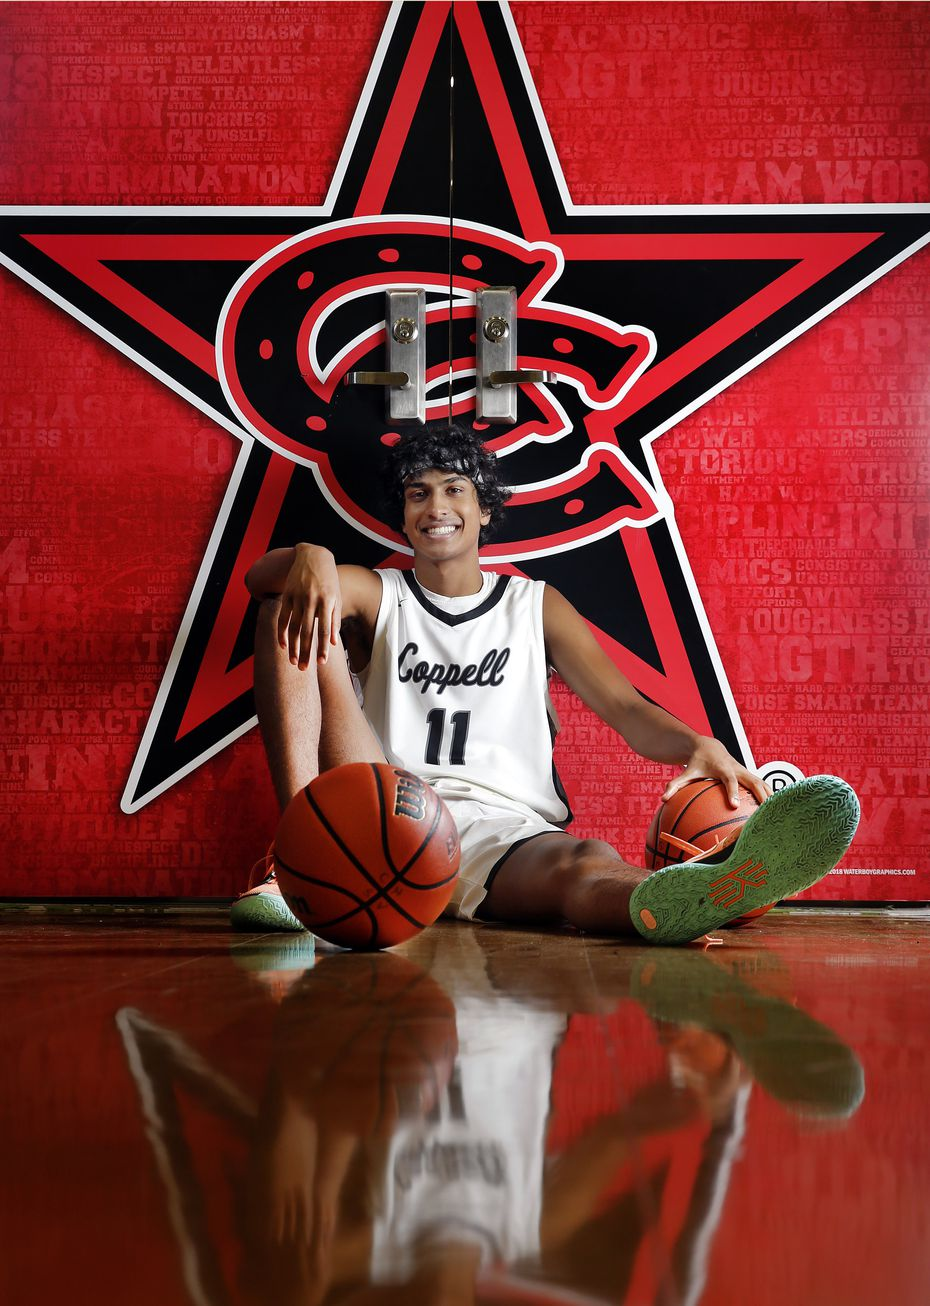 Coppell High School senior basketball player Ryan Agarwal is is one of the best class of 2022 basketball players in the country. He is photographed at Coppell HS, Wednesday, July 14, 2021.